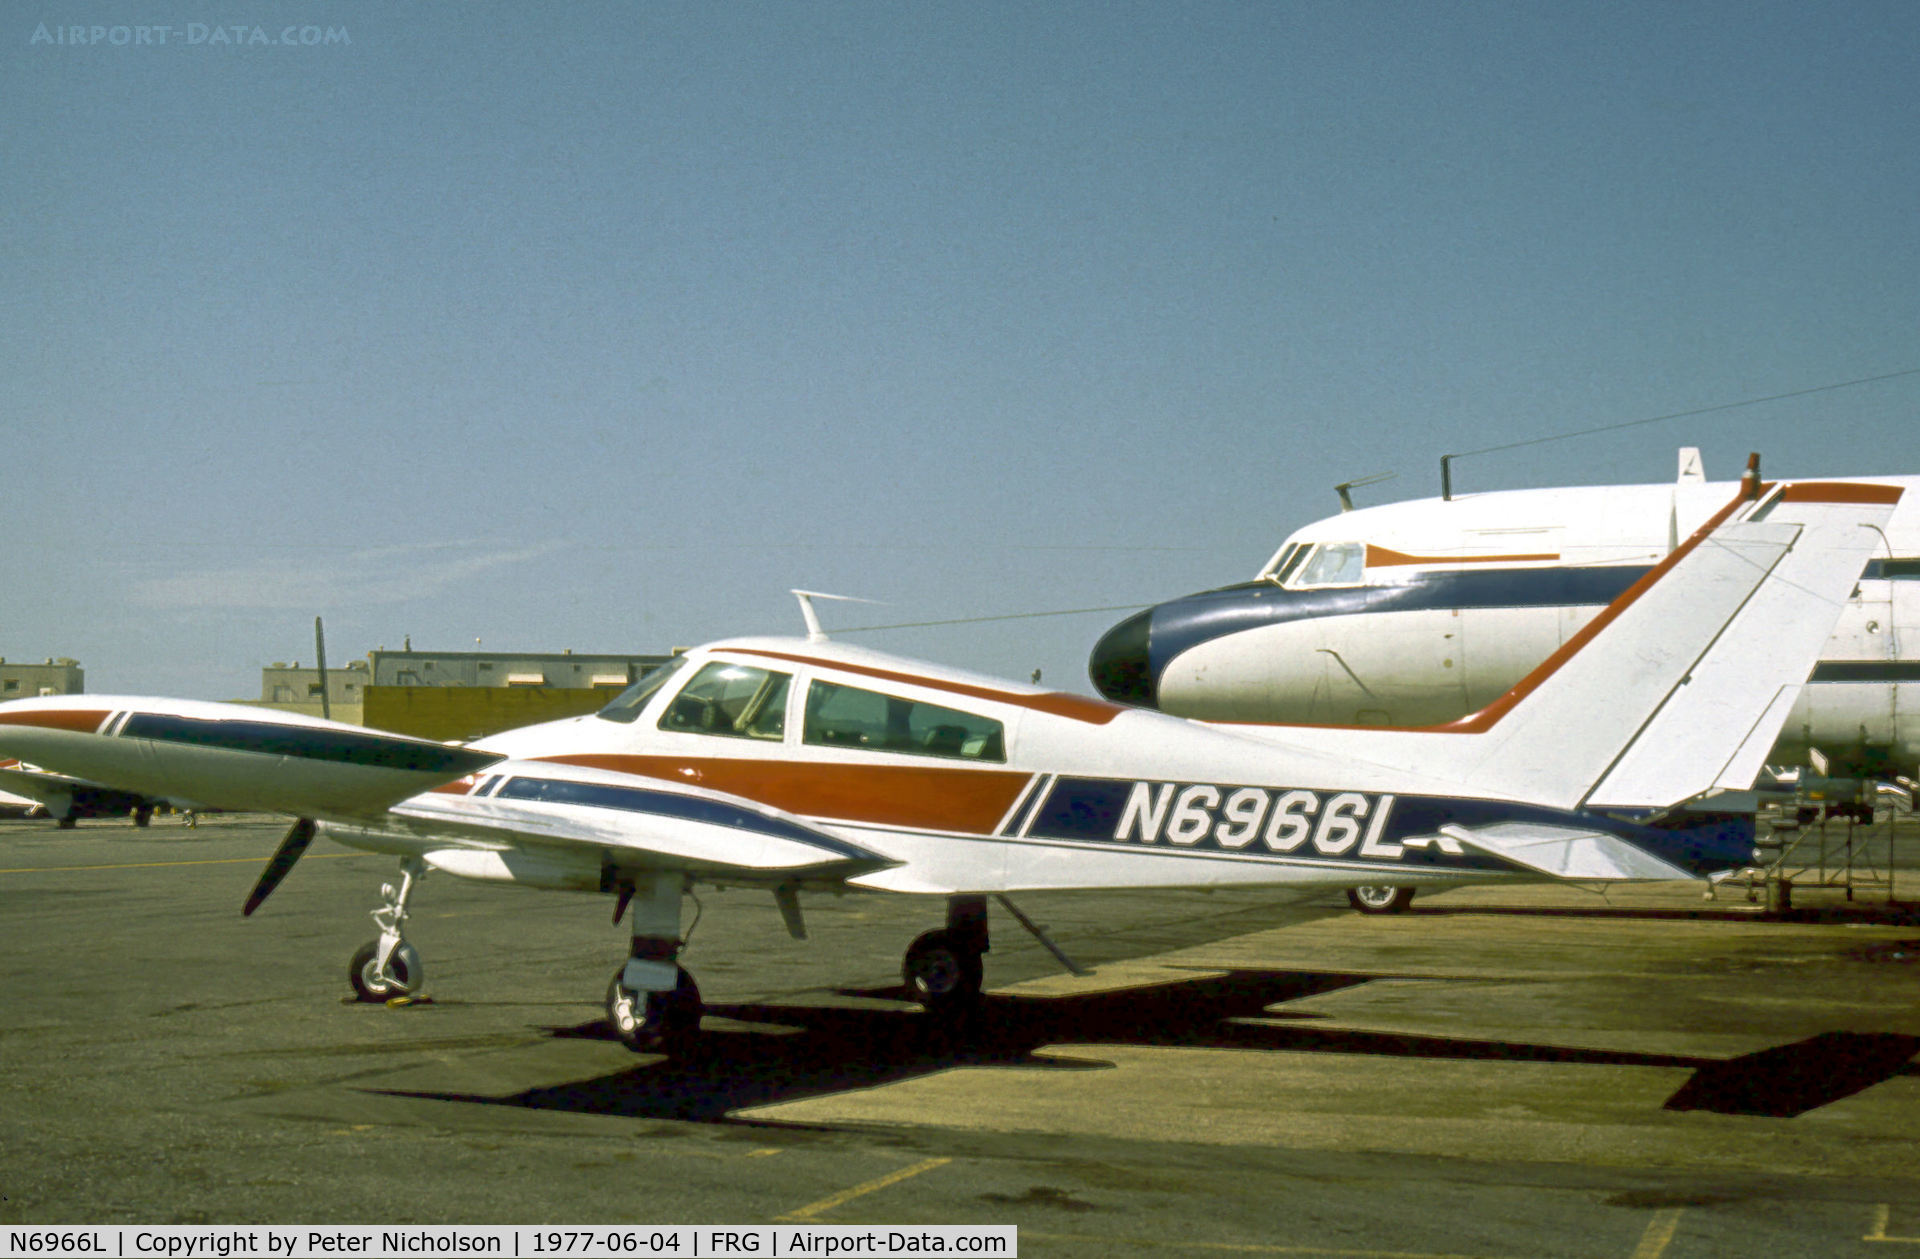 N6966L, 1966 Cessna 310K C/N 310K0066, Cessna 310K resident at Republic Airport on Long Island in the Summer of 1977.